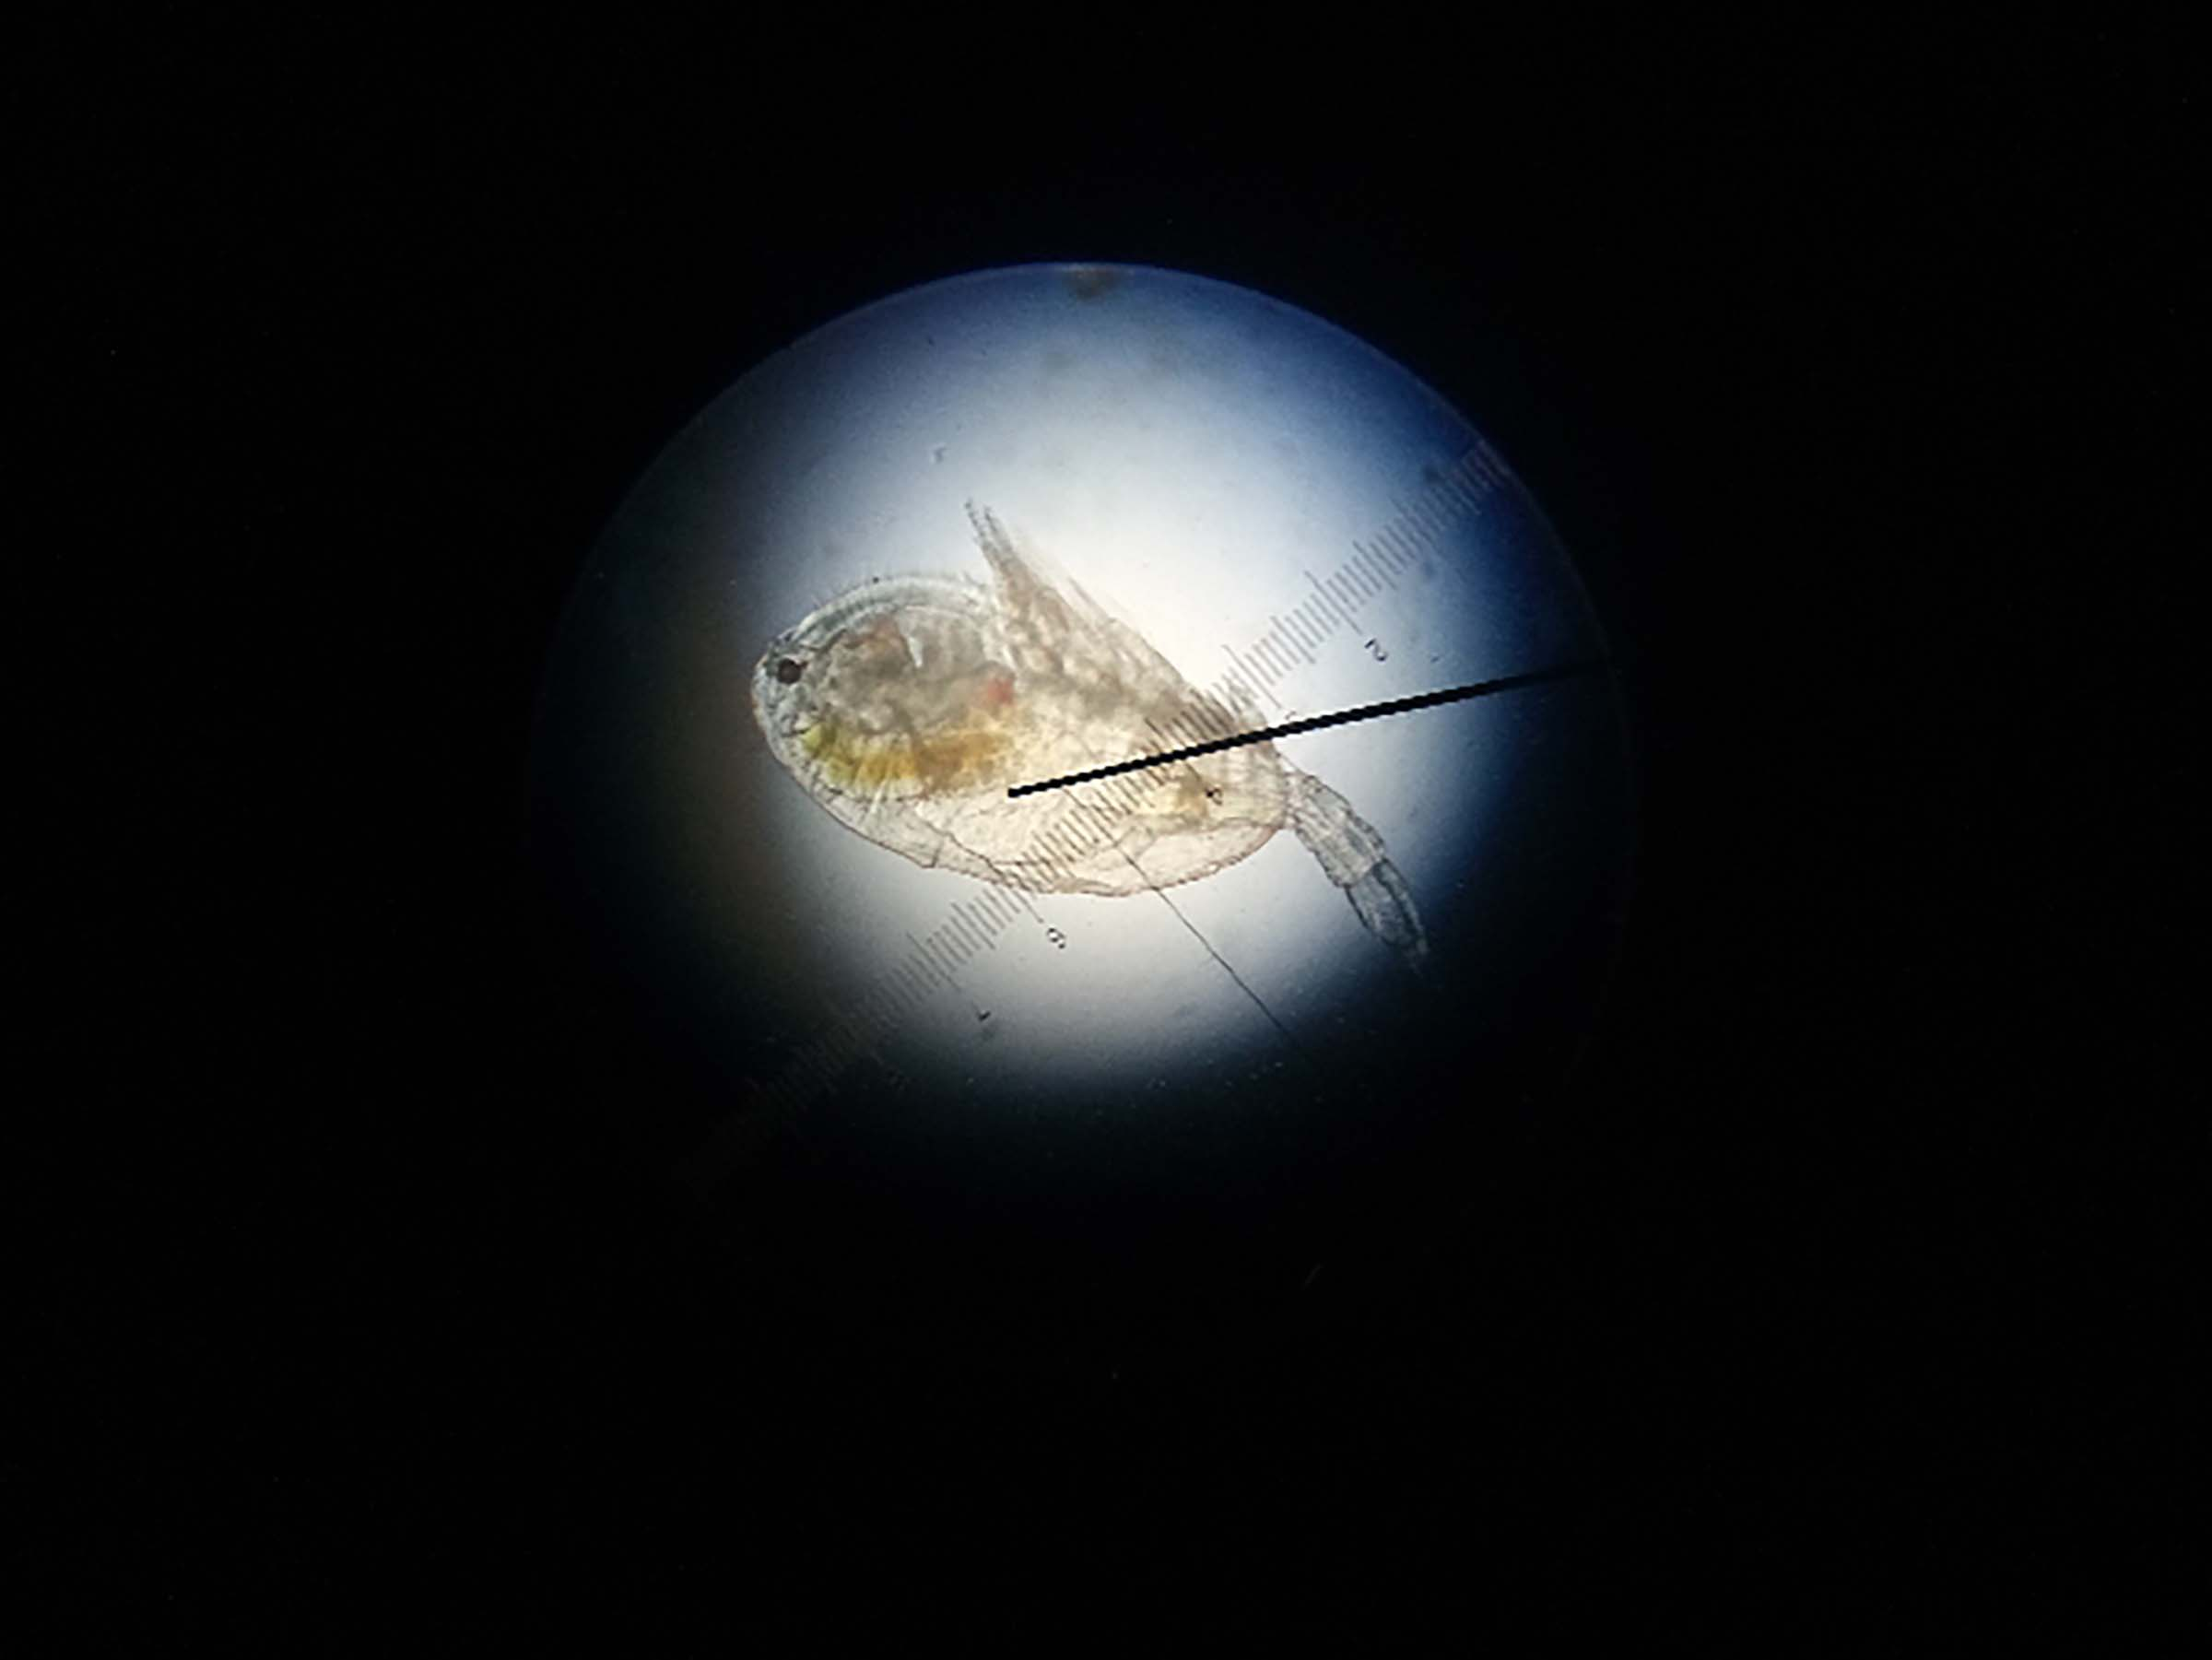 The end of the microscope showing small plankton matter